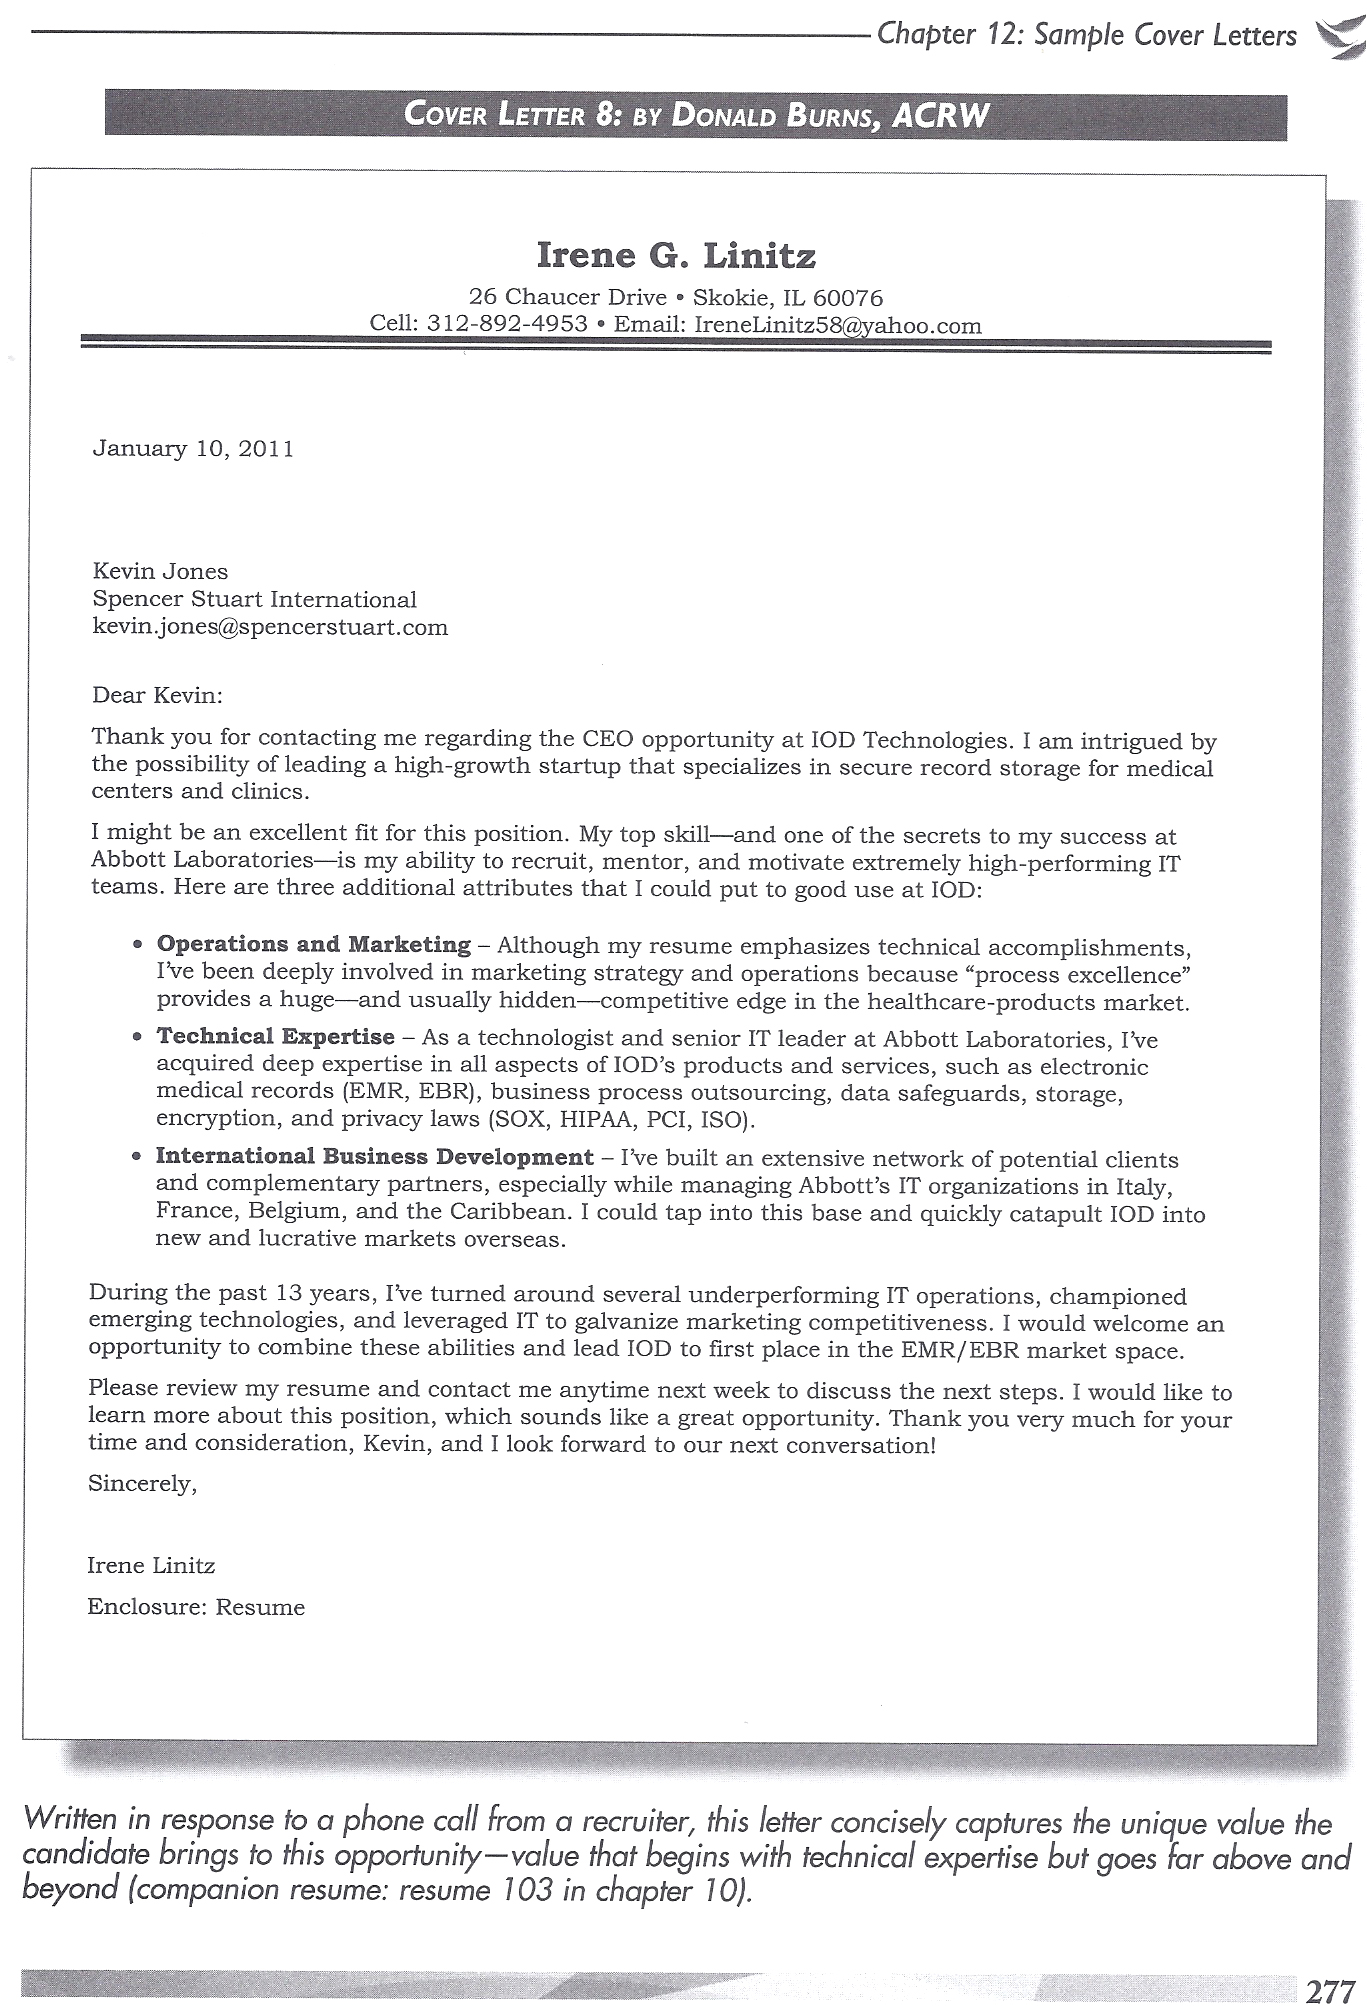 Military Resume Cover Letter   Cover Letter Relocation Examples ...